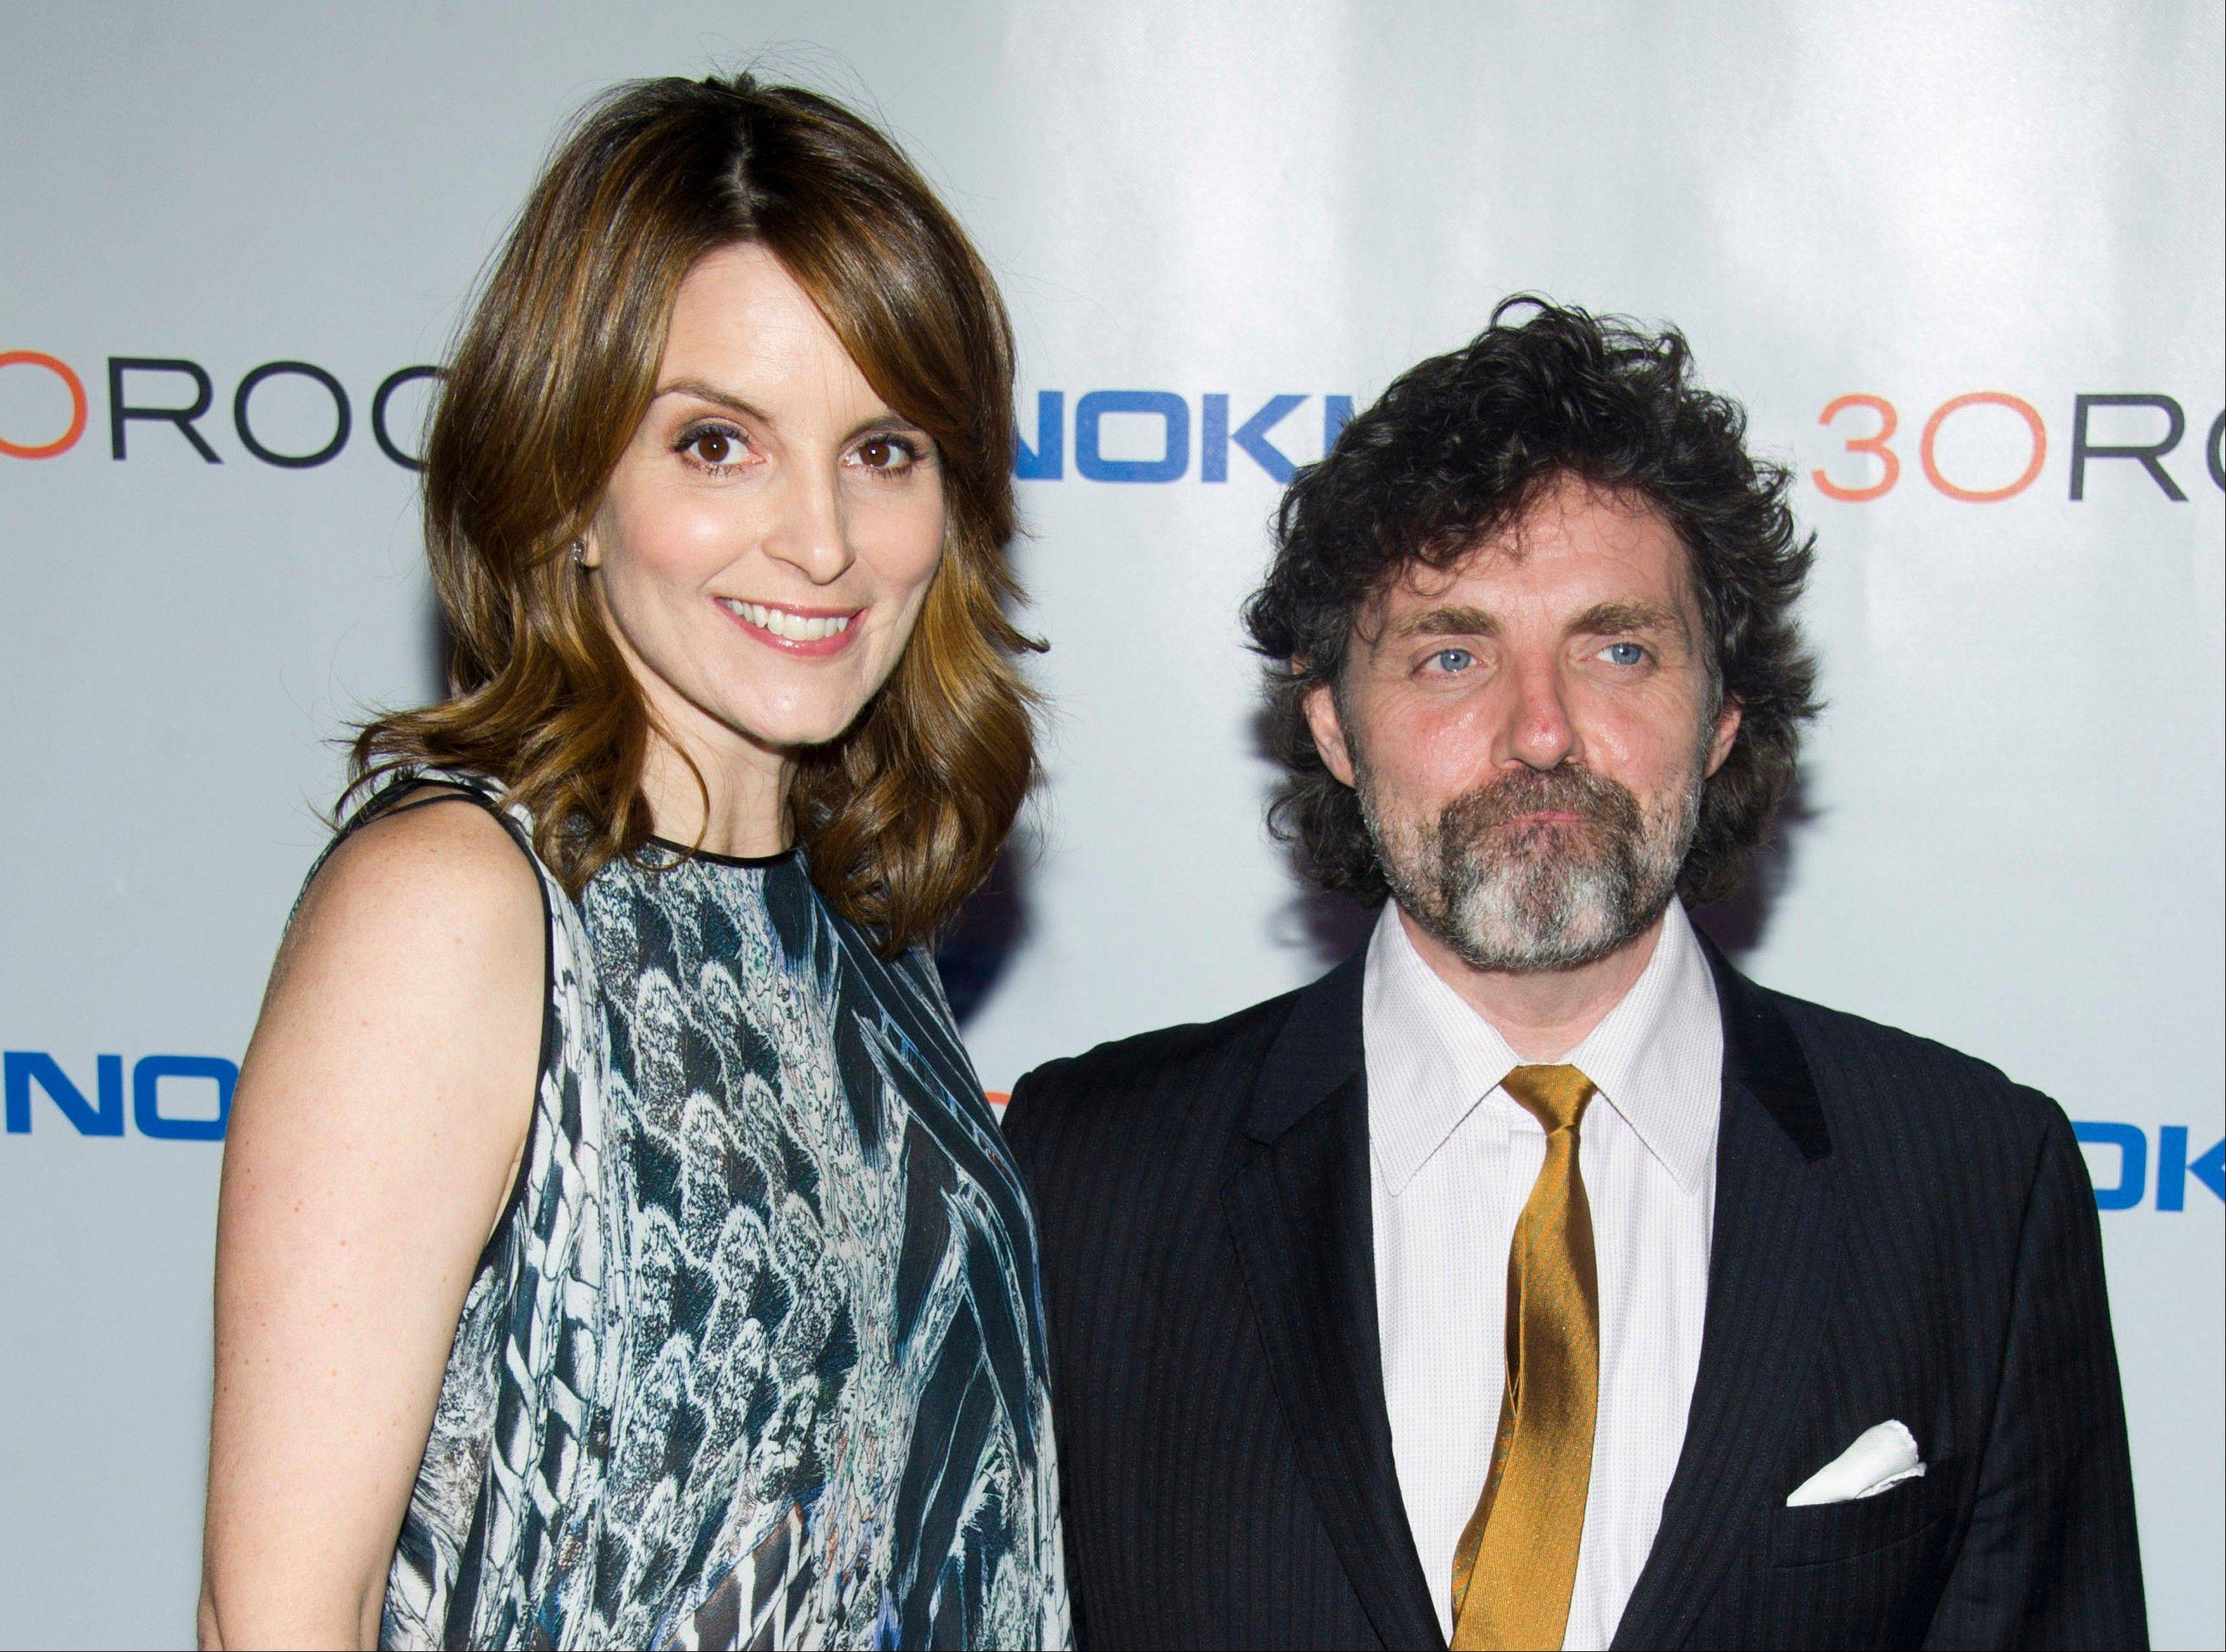 Tina Fey, left, and her husband Jeff Richmond at the �30 Rock� farewell wrap party in New York. Richmond is executive producer and the composer and arranger for the show.